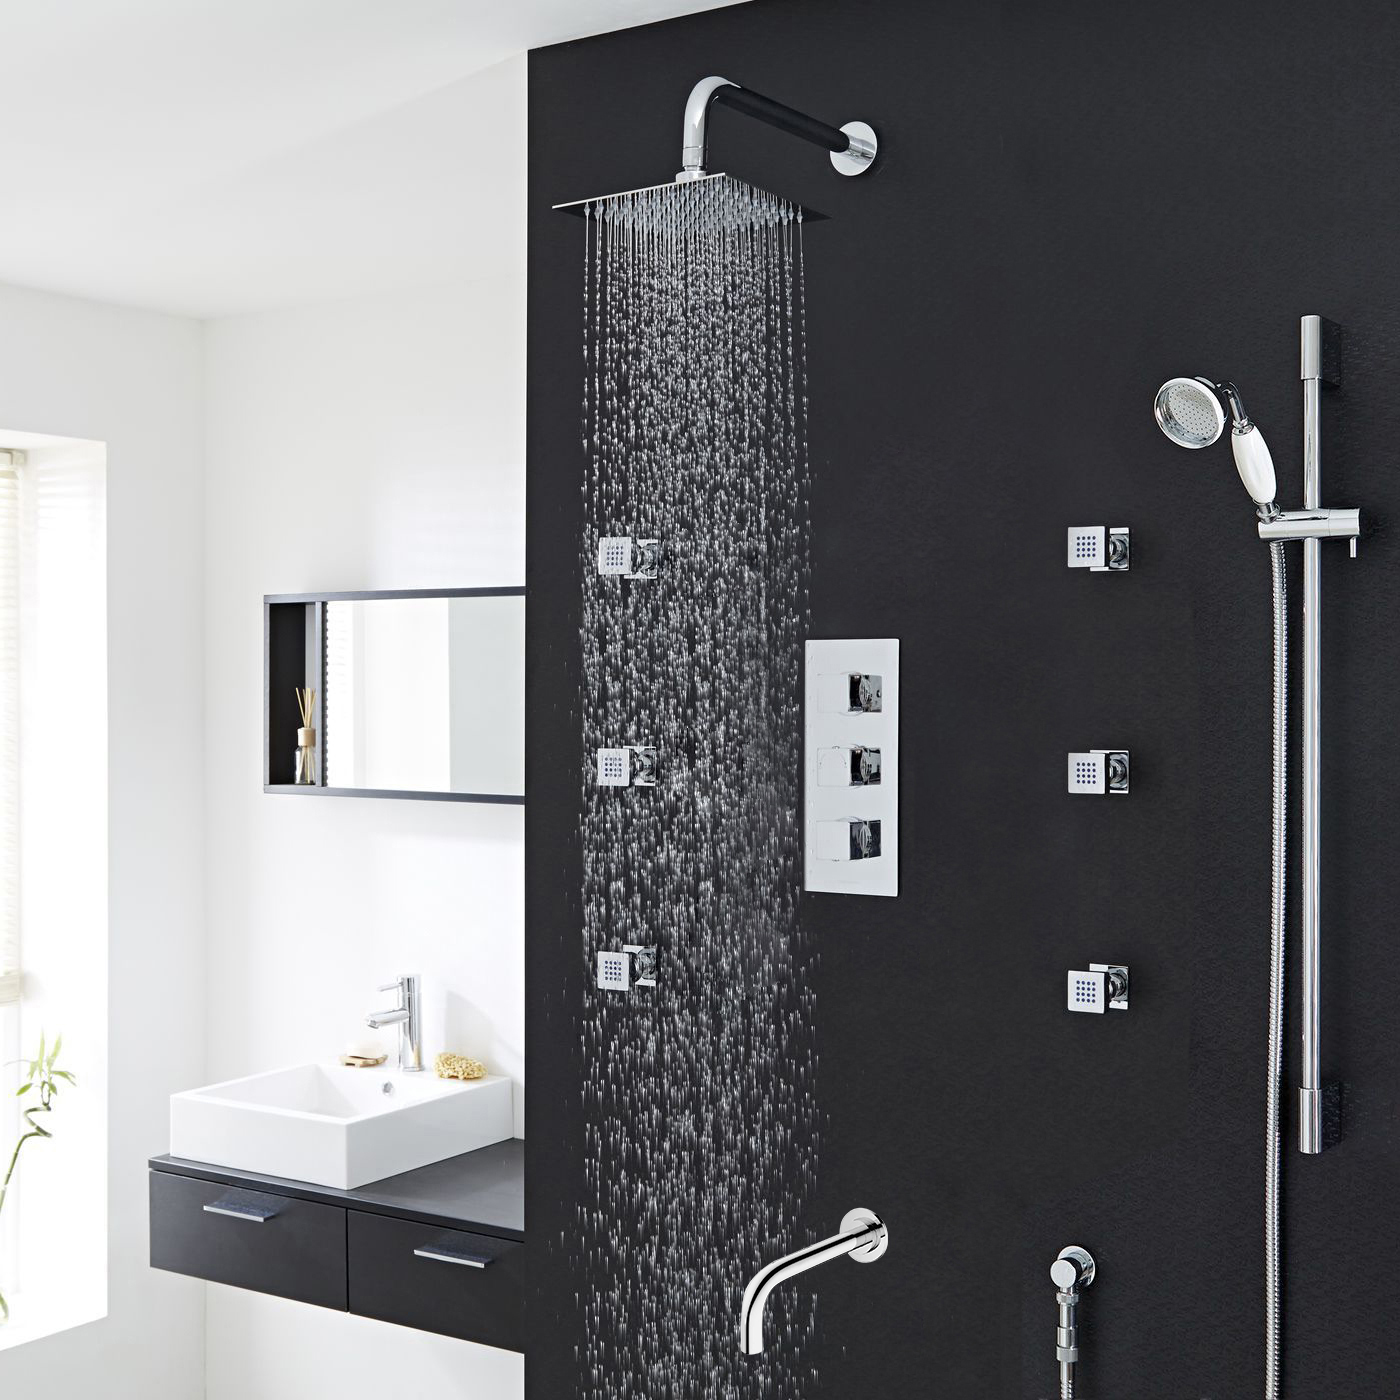 Buy Catania Square Bathroom Shower Set With Rainfall Shower Head Hand Shower Best Sale